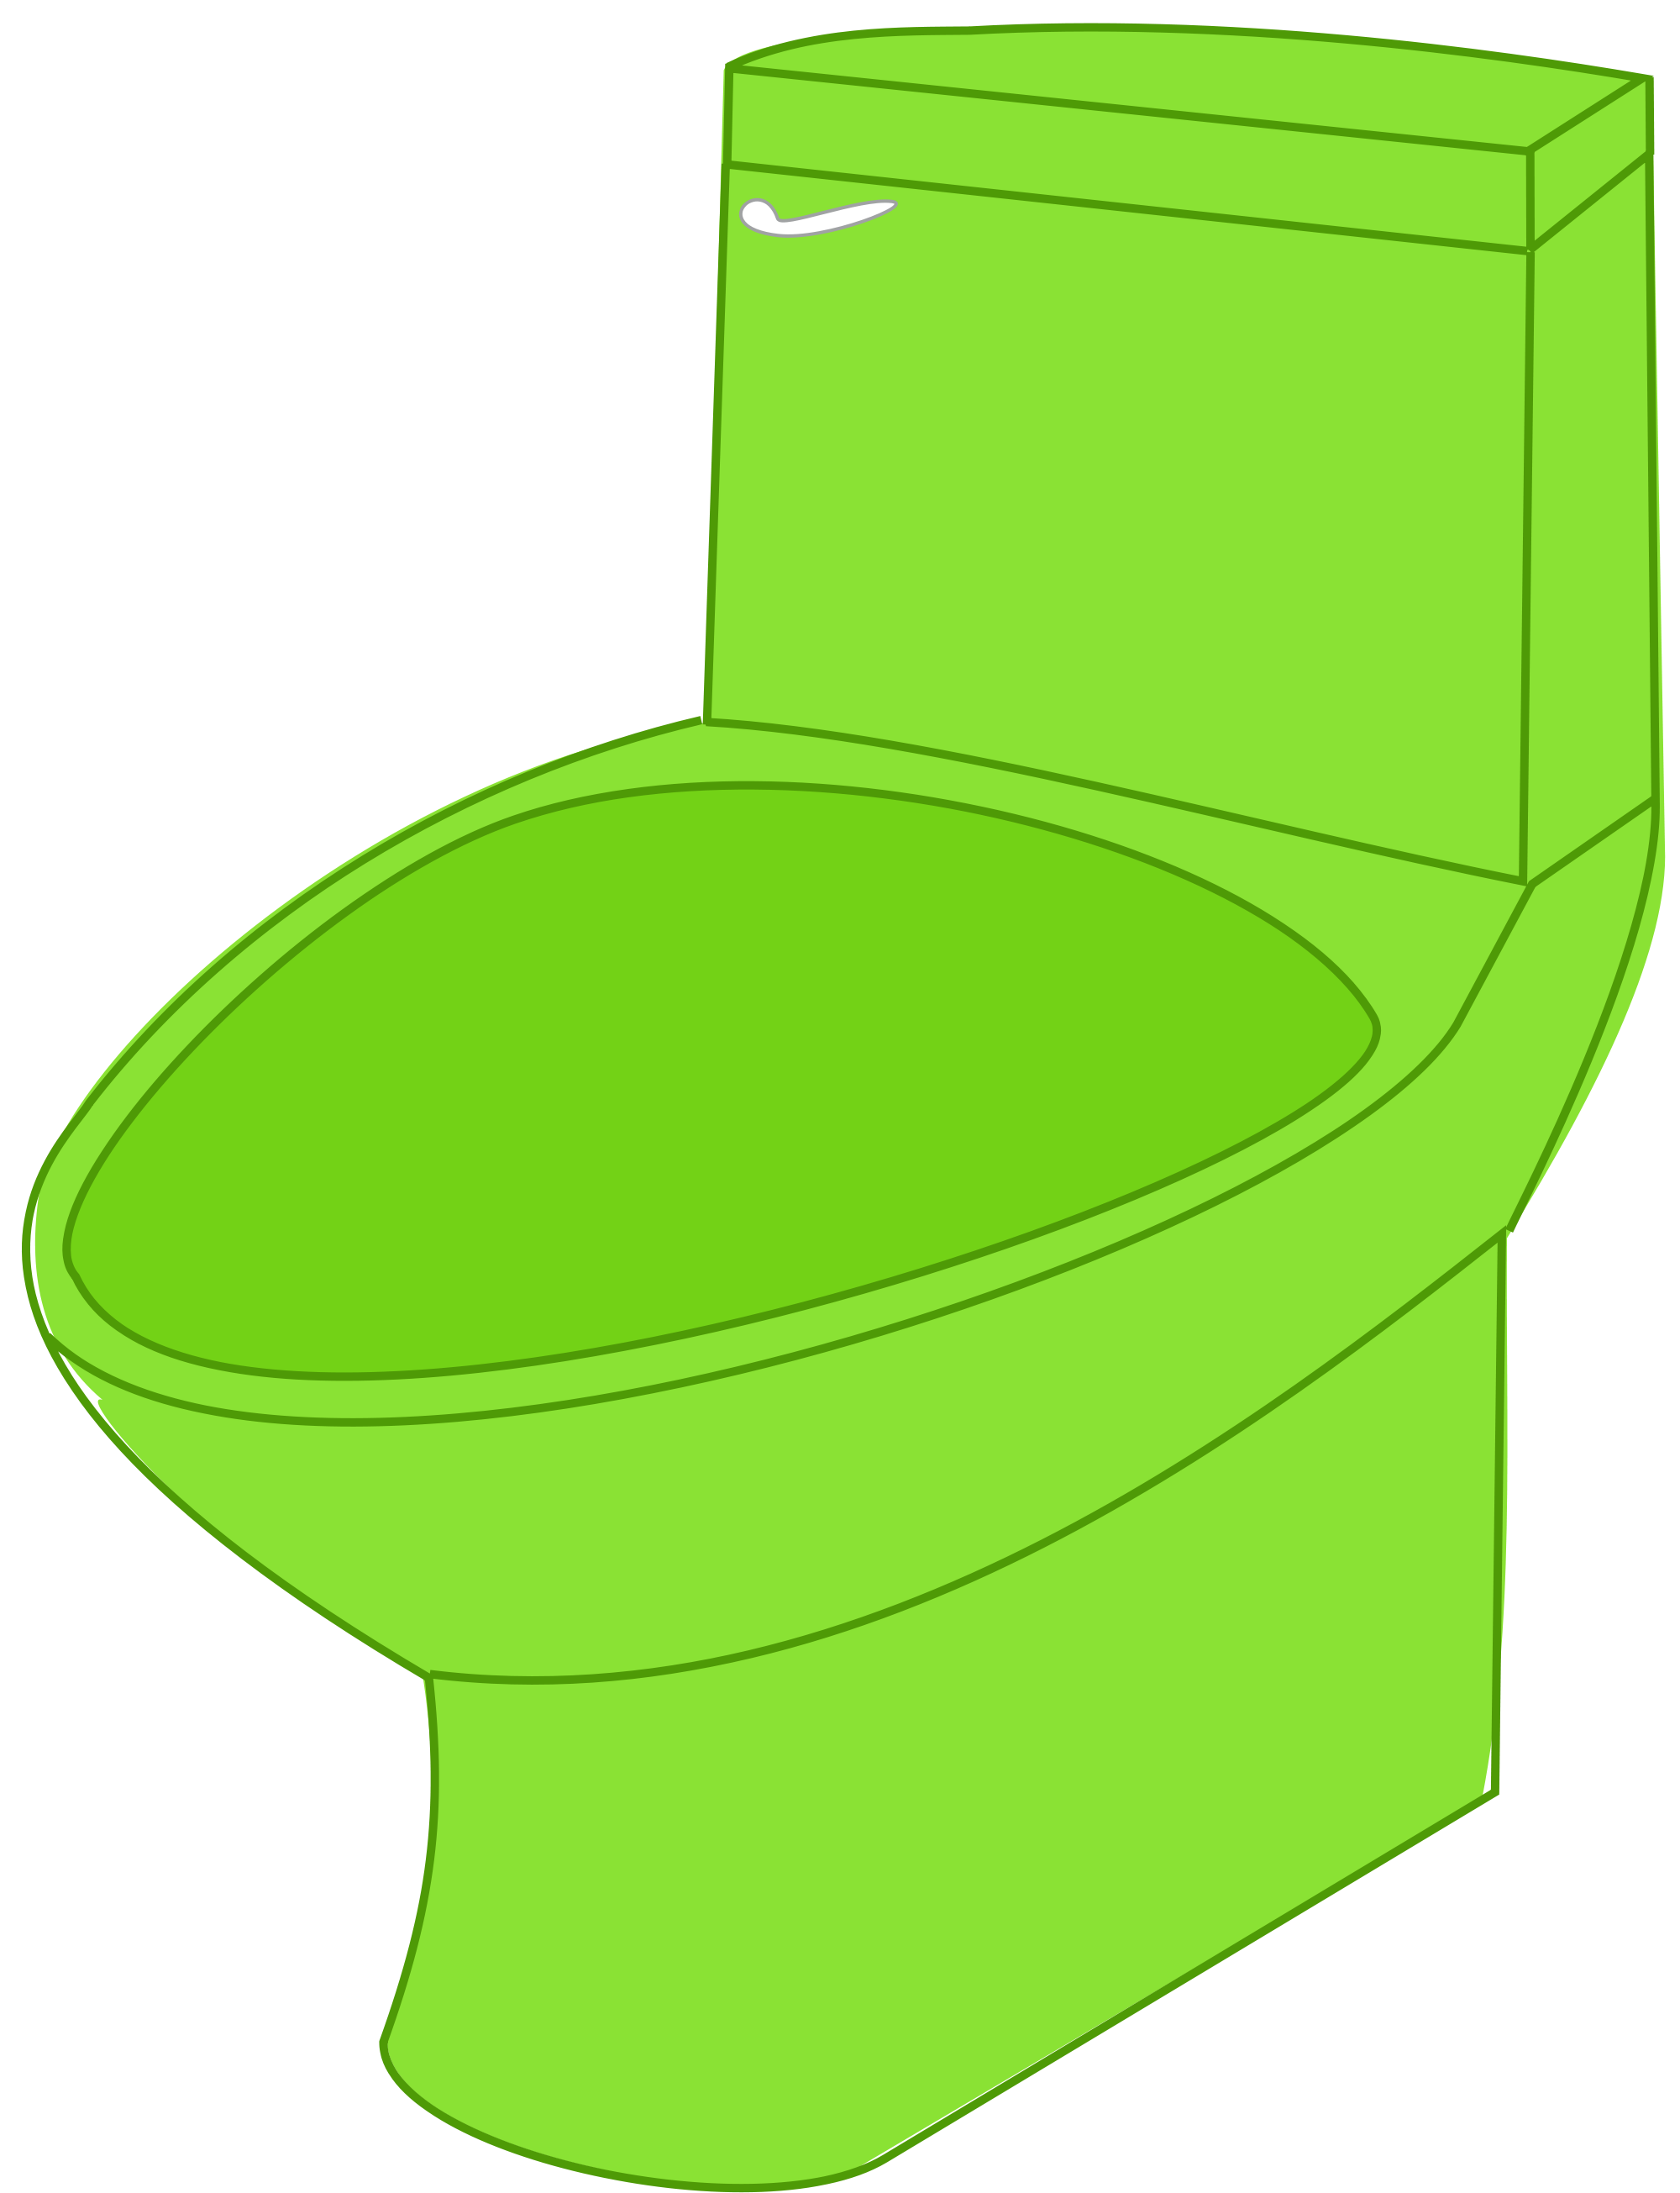 Toilet svg #798, Download drawings